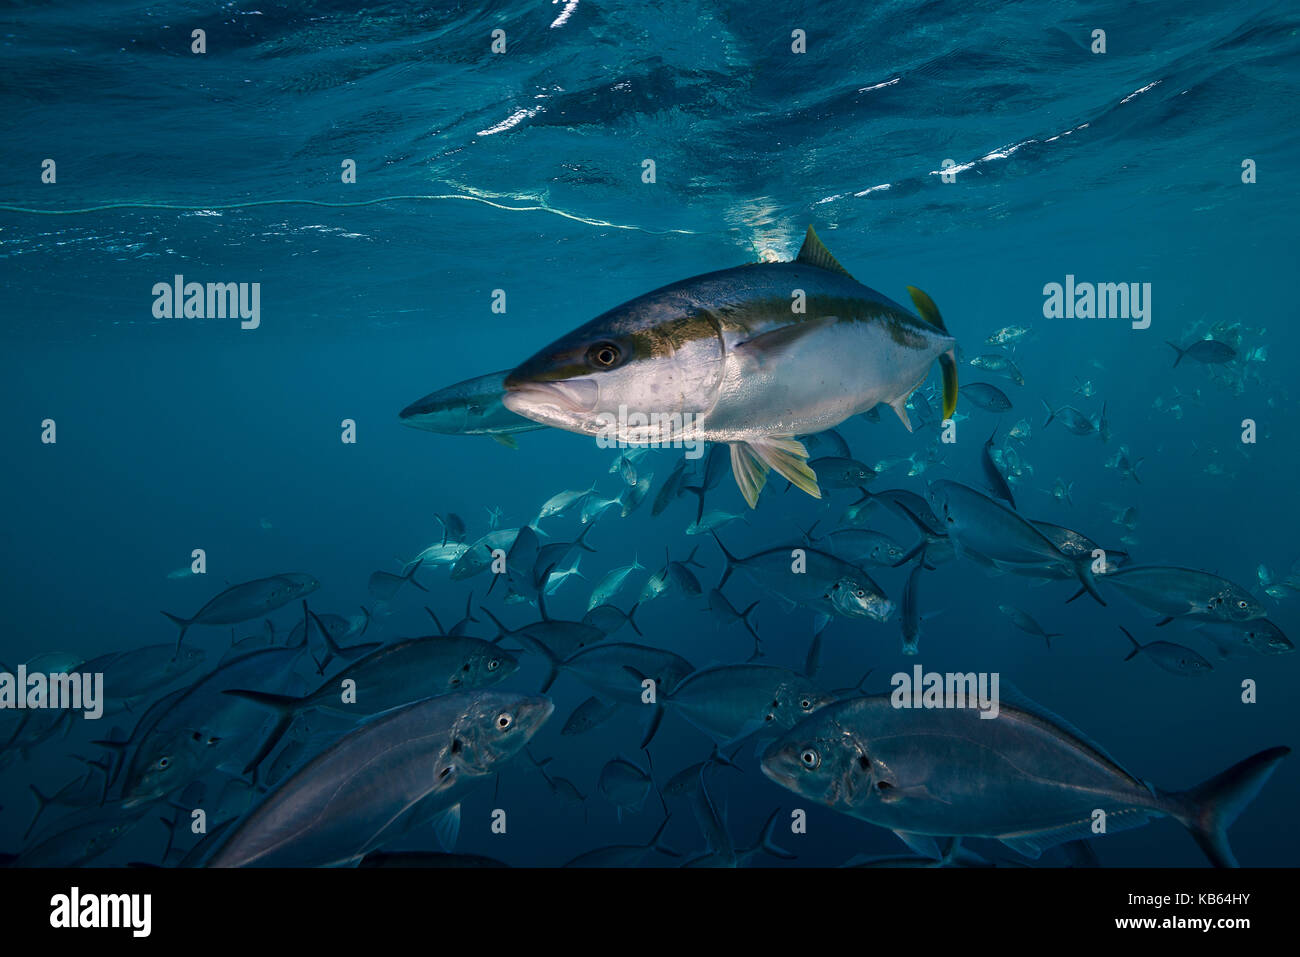 King fish swimming in a school of jackfish,Neptune Islands, South Australia. - Stock Image